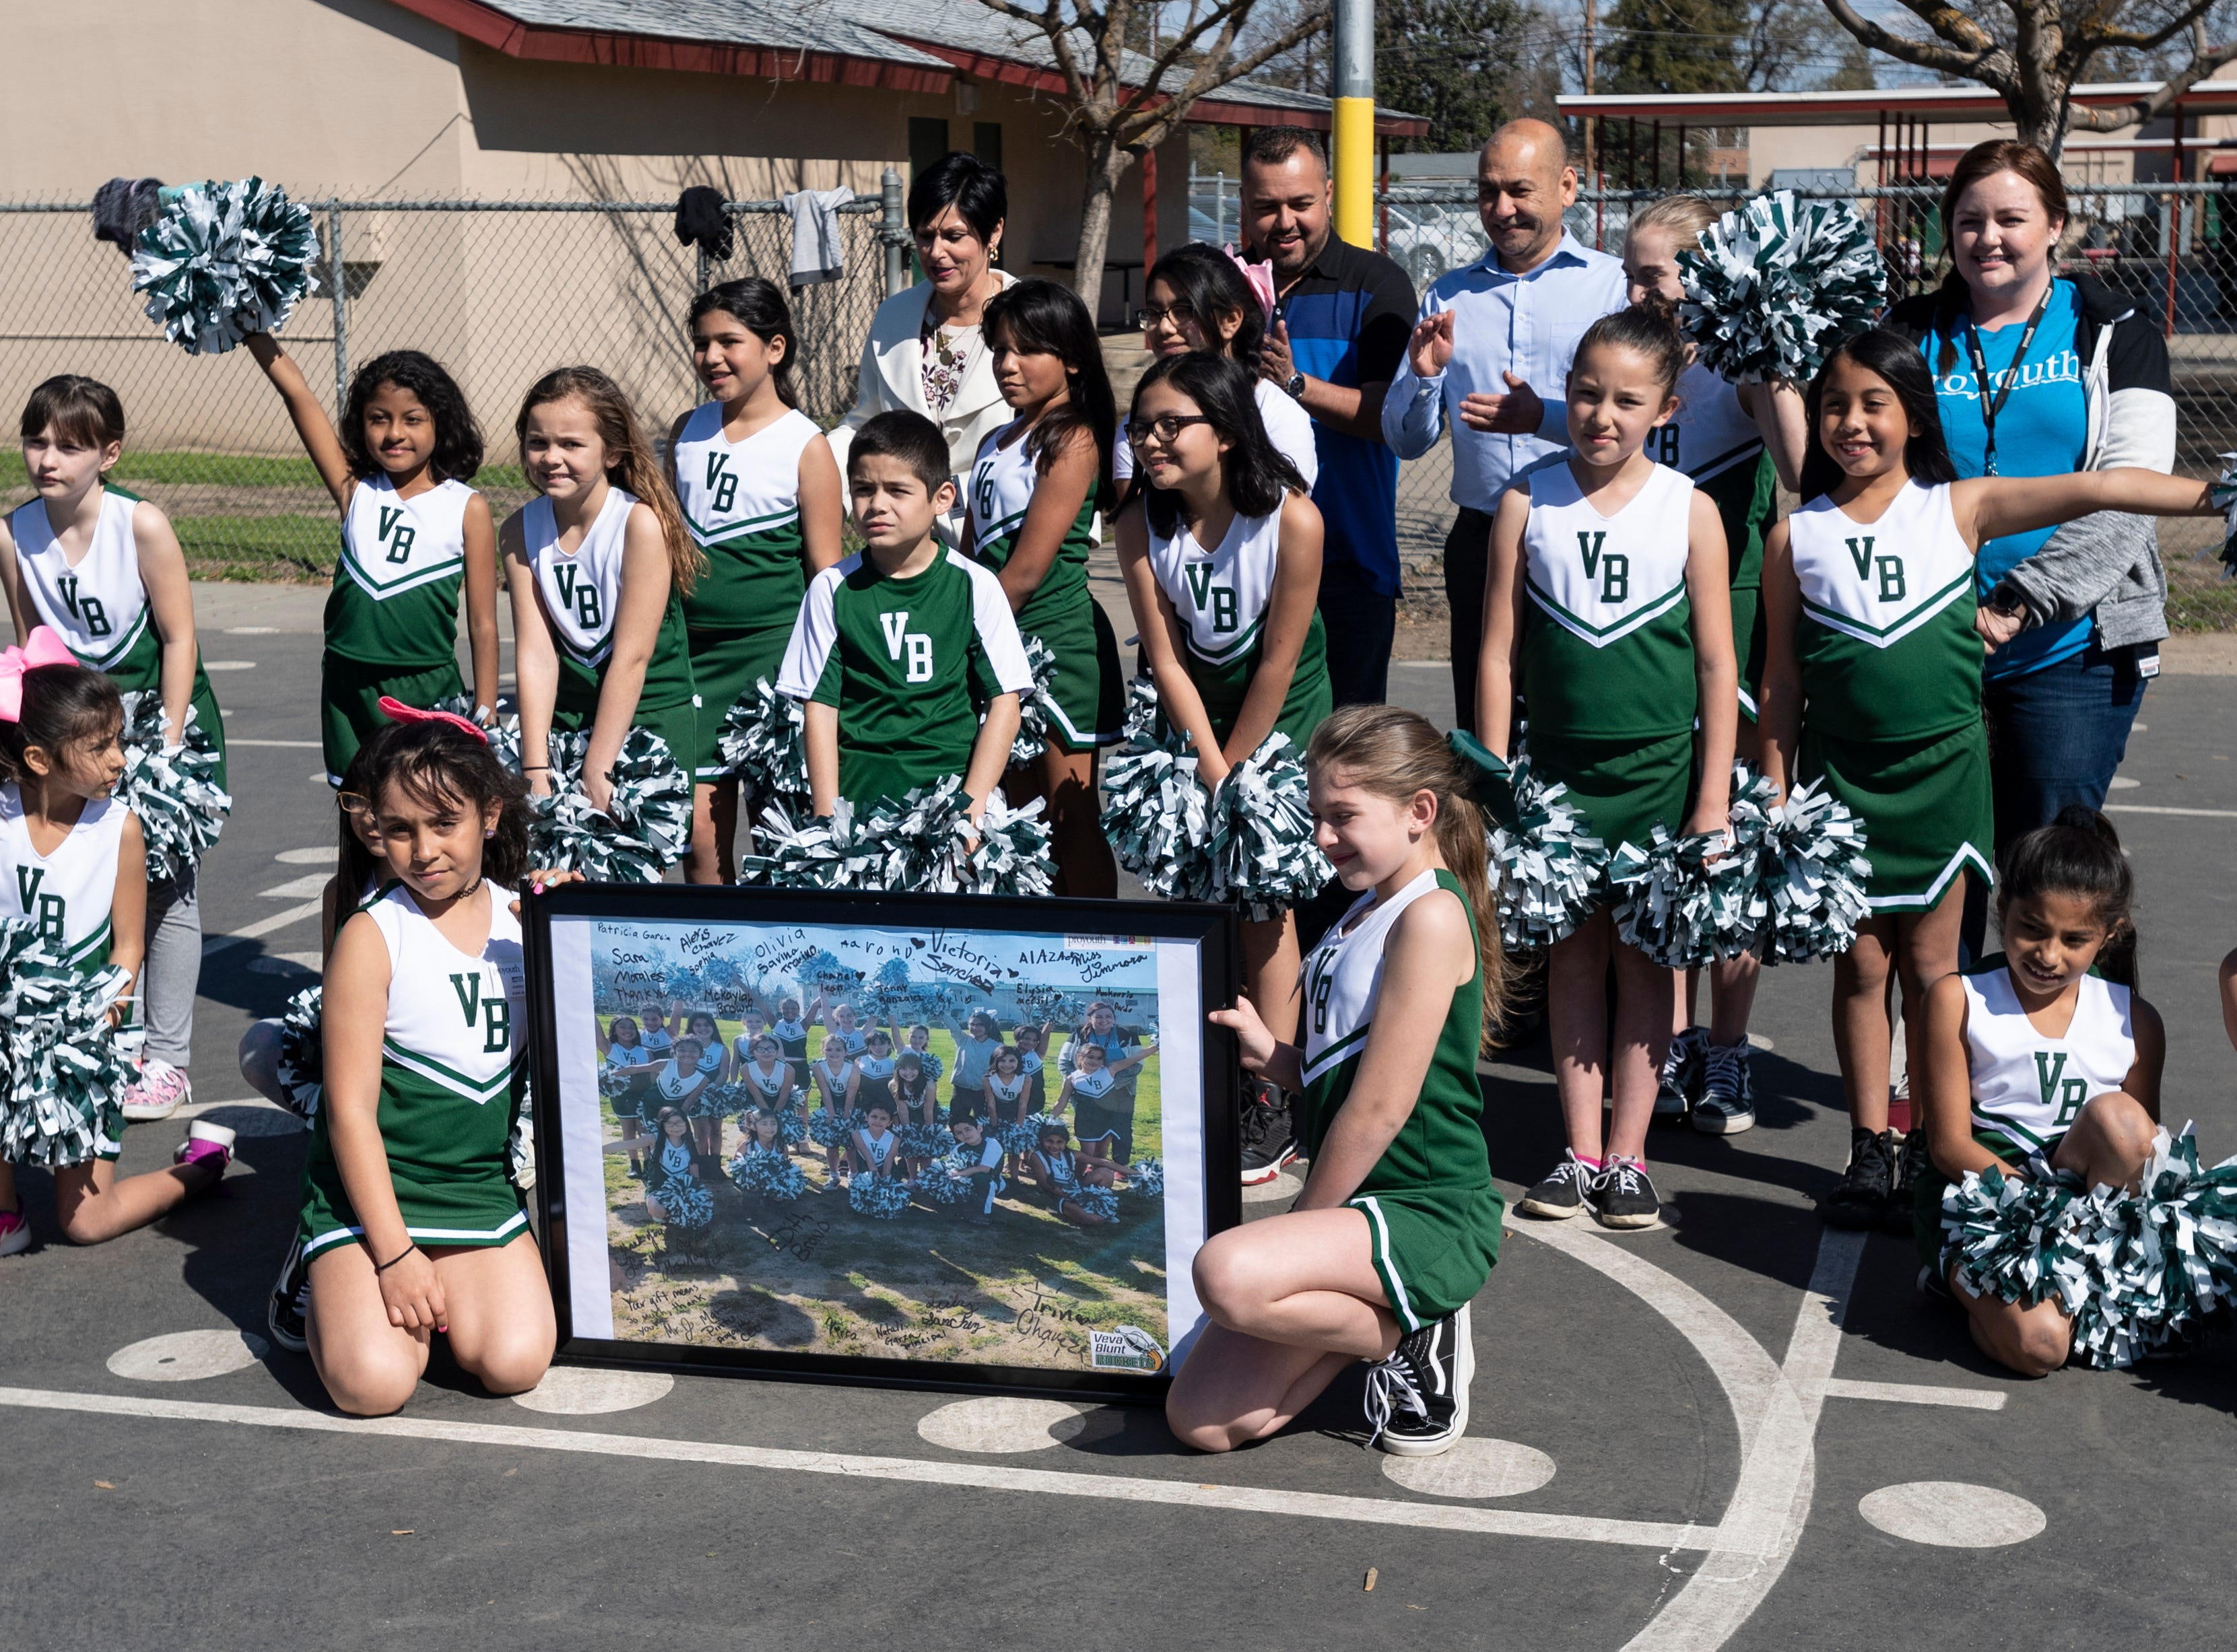 Cheerleaders show off their new uniforms during the Pro-Youth / HEART program for students at Viva Blunt School in Visalia on Wednesday, March 13, 2019. Pom-poms and 25 uniforms were donated by Julio Mendoza of NGC Construction Company.